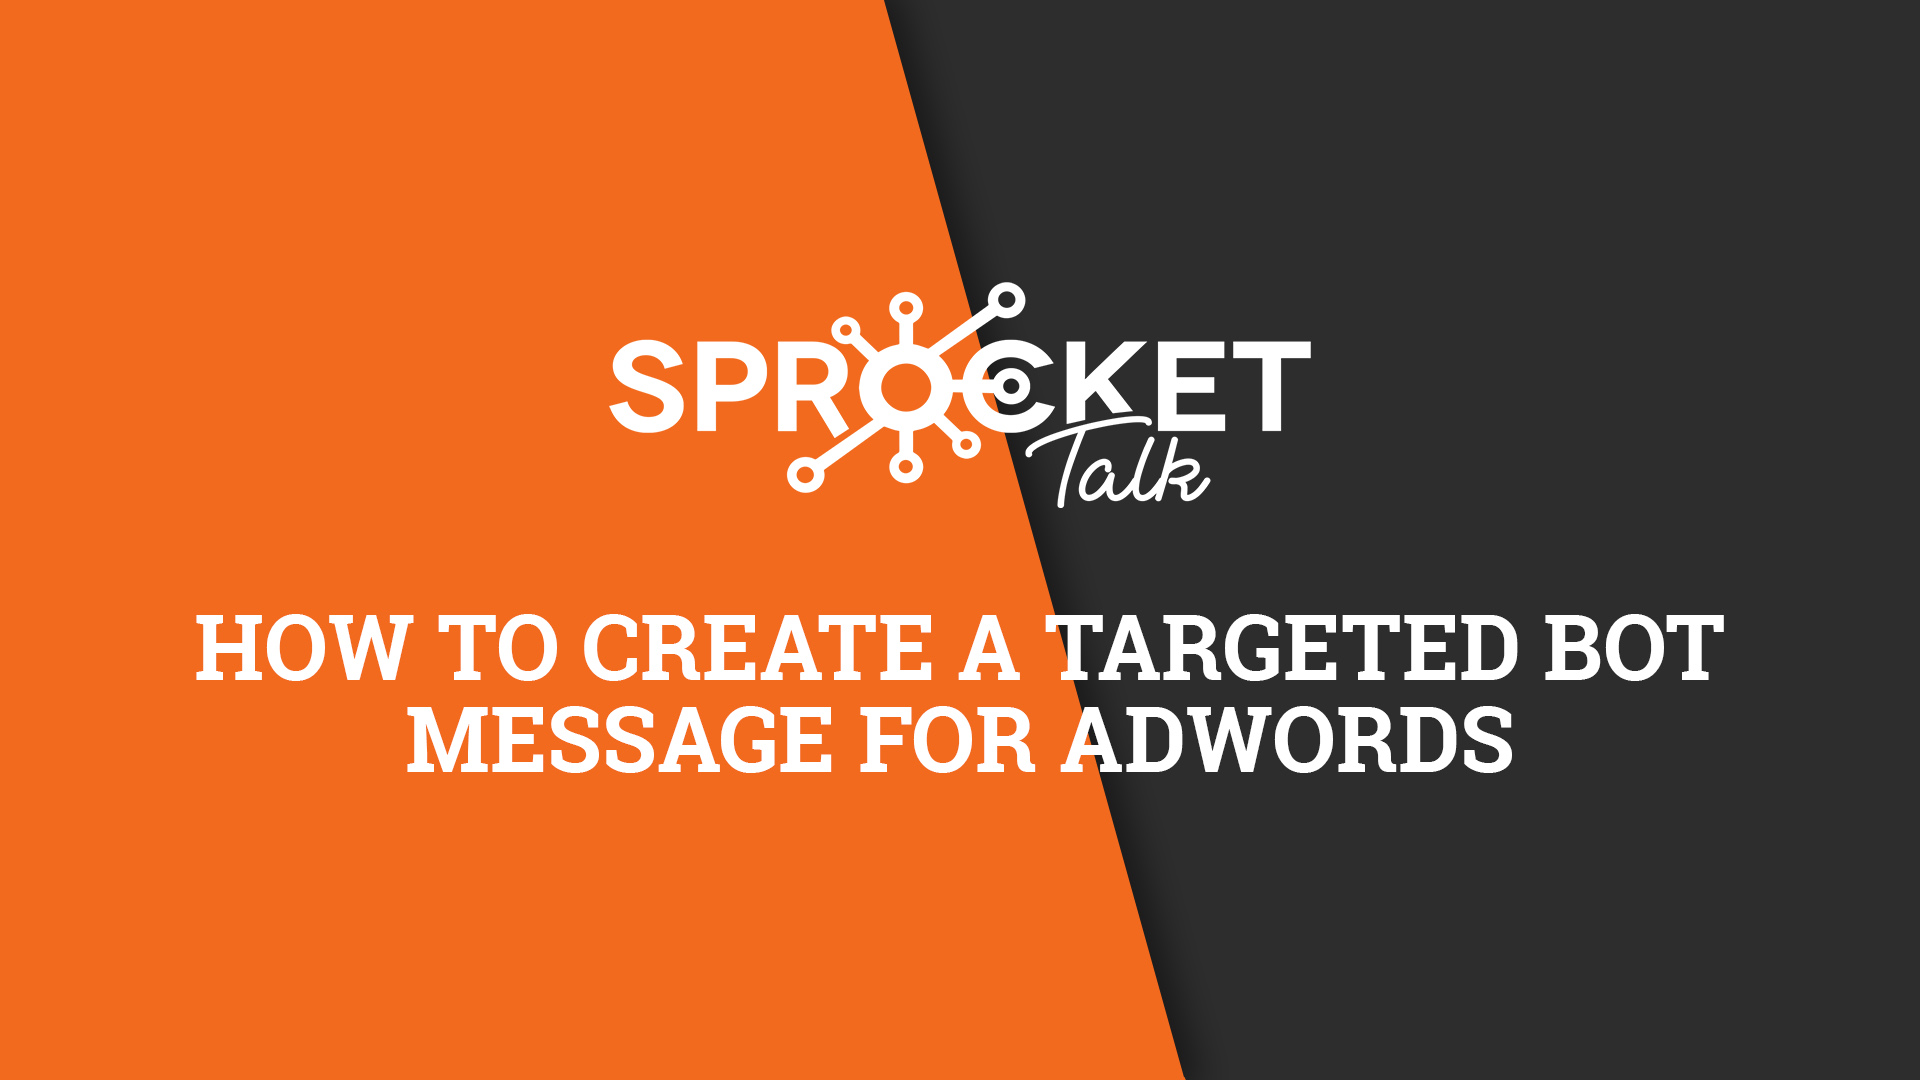 How To Create a Targeted Bot Message for Adwords